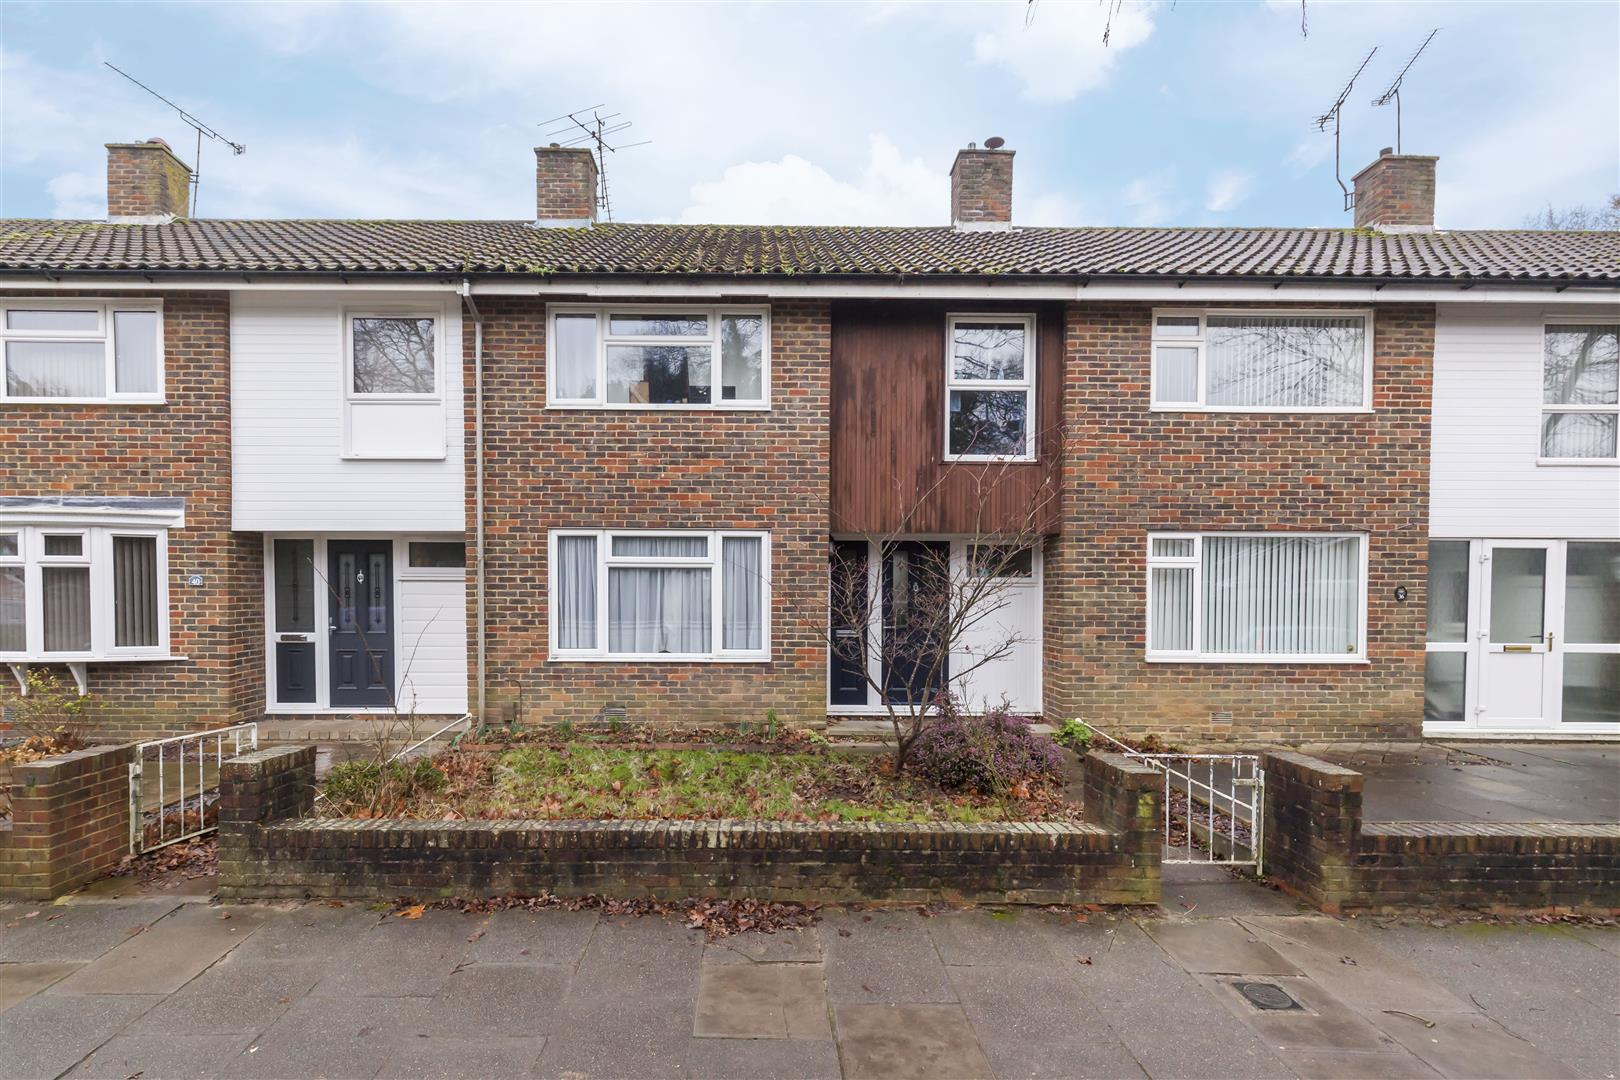 3 bed terraced-house for sale in Furnace Drive, Crawley 15